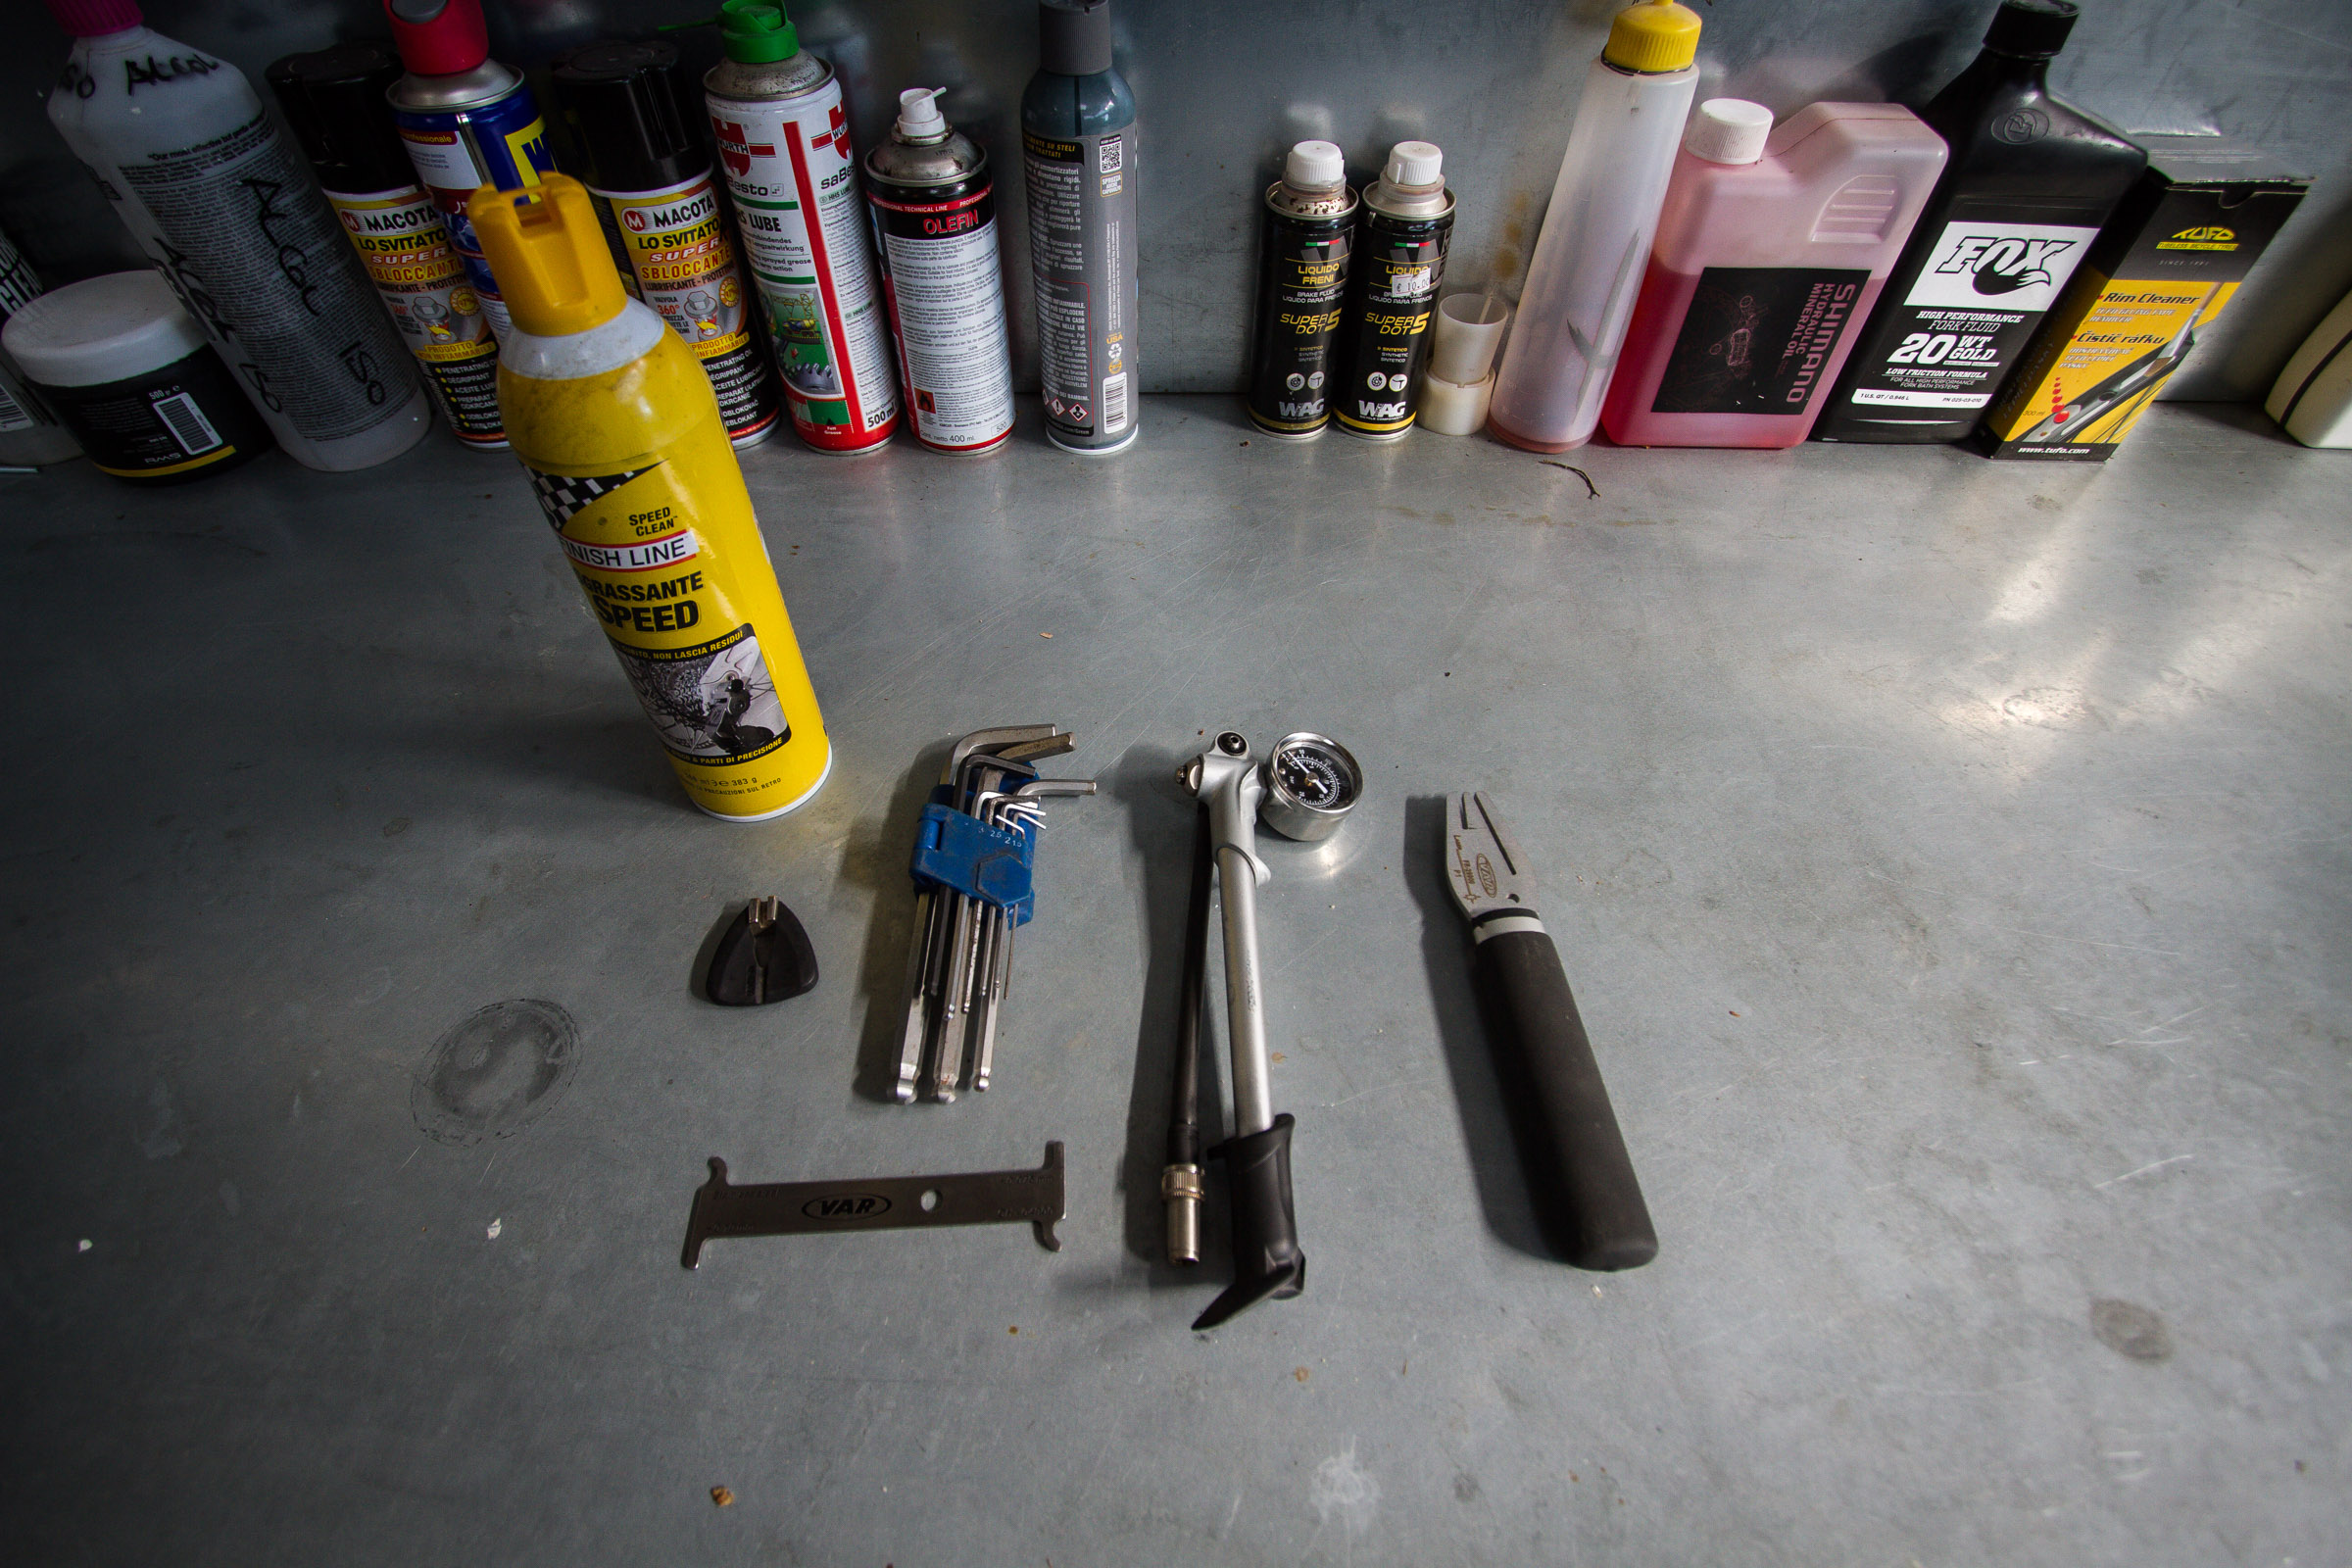 Allen Keys, a shock pump, a disc straightener, a chain check tool, and a spoke key, also we used a bikt of cleaning liquid for brakes.